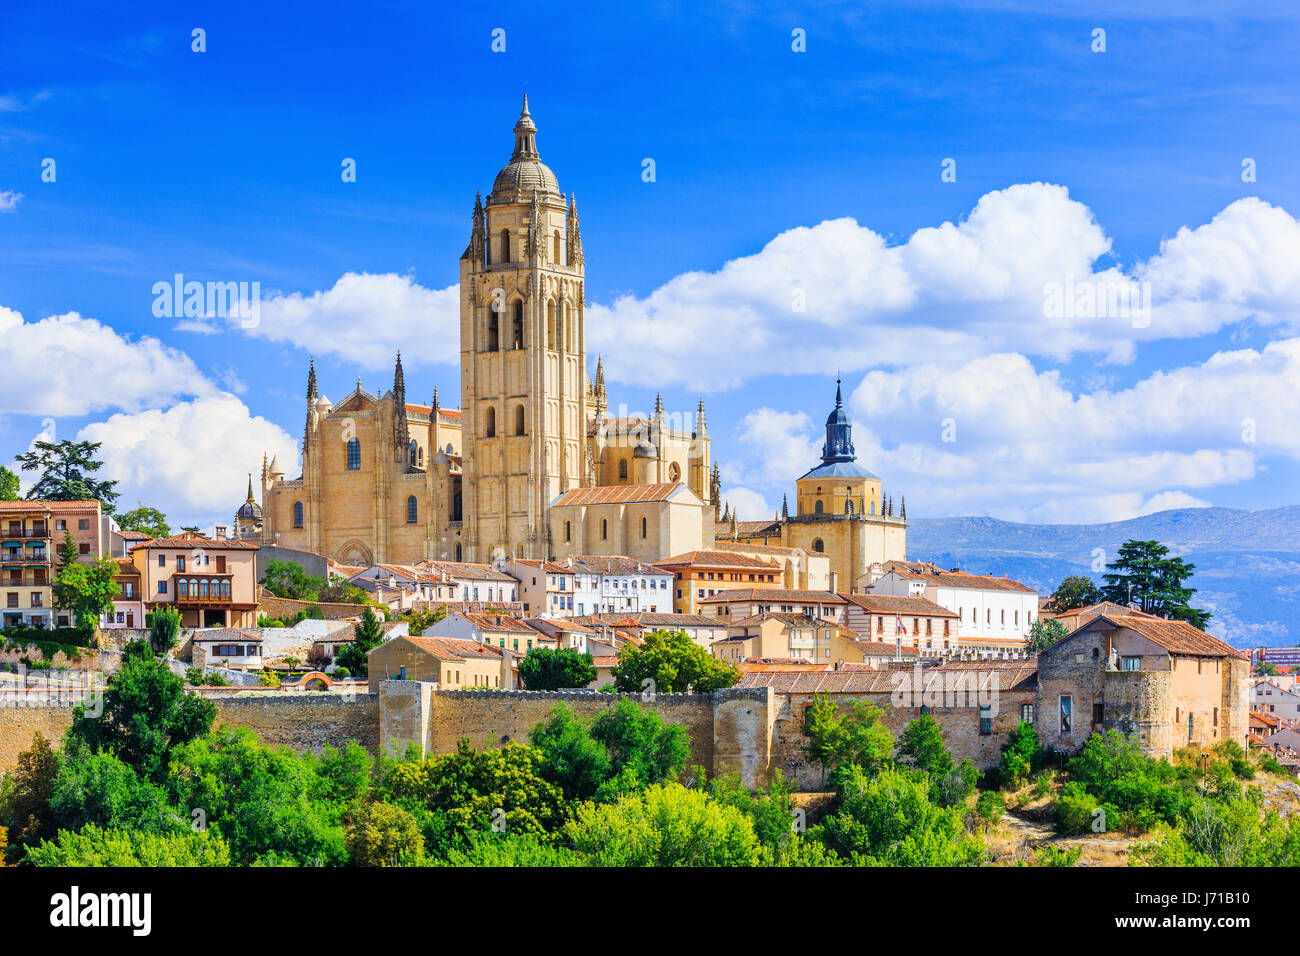 Segovia, Spain. View over the town with its cathedral and medieval walls. - Stock Image